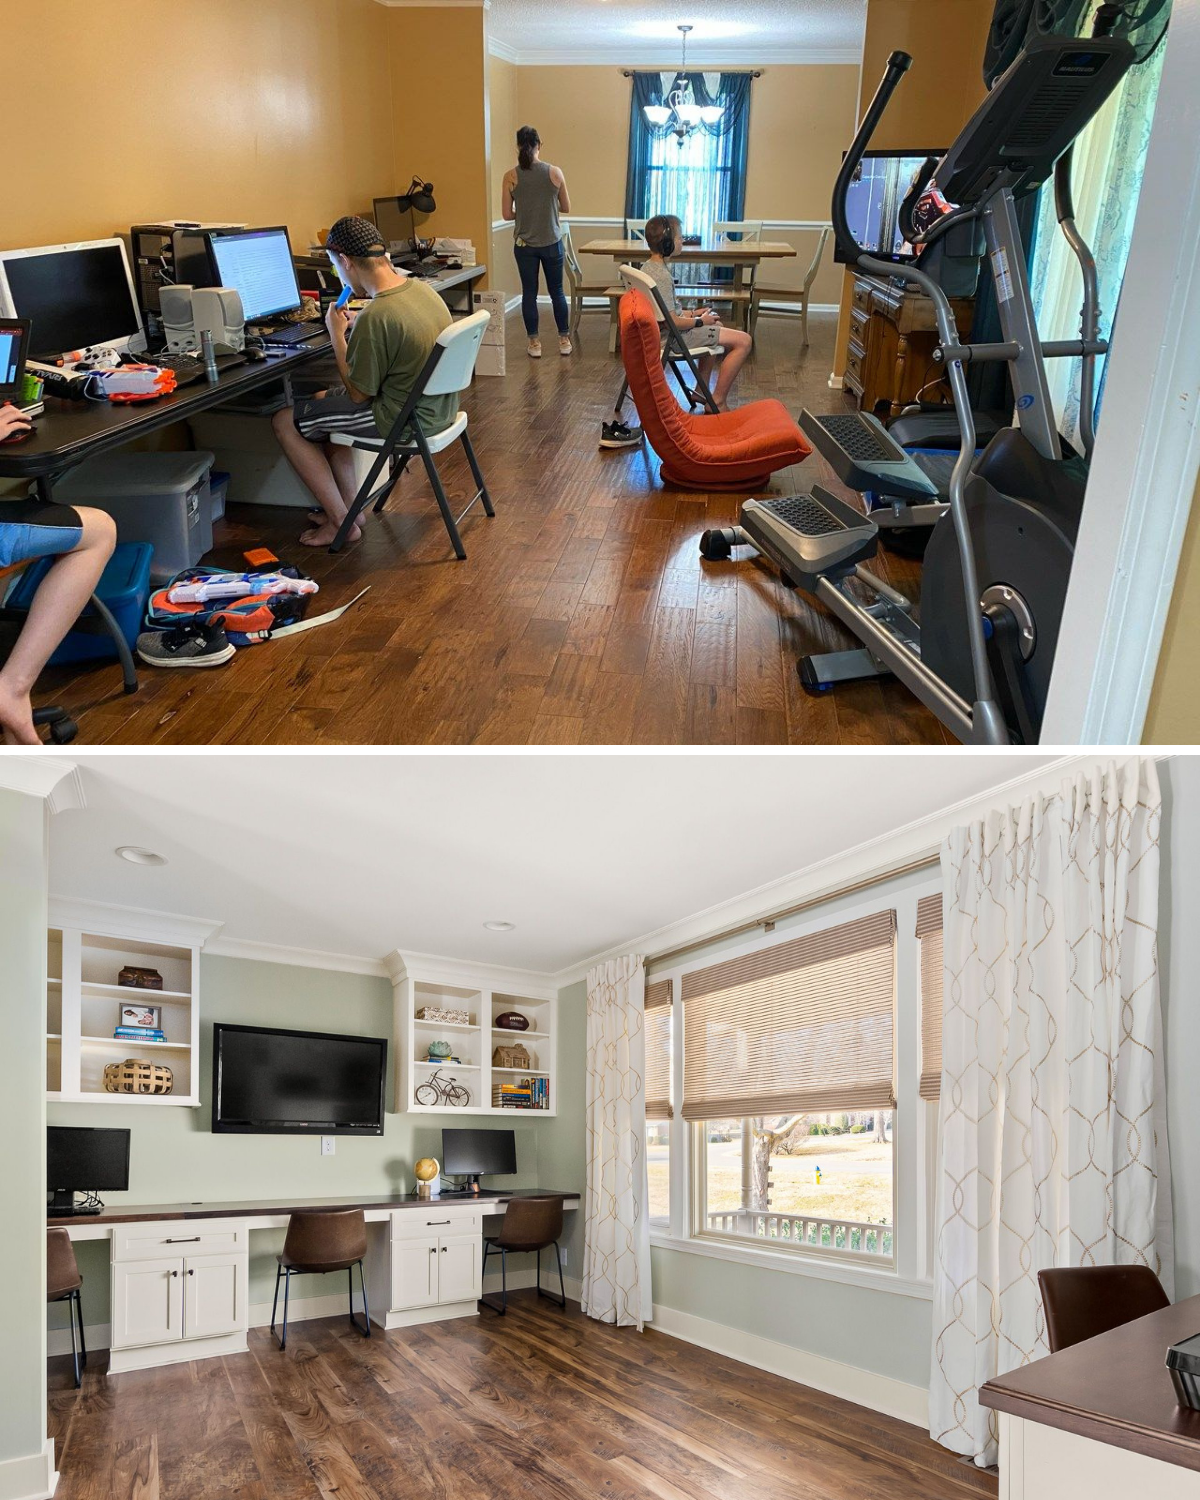 superior construction and design Lebanon, TN 1970s ranch reno office space before and after